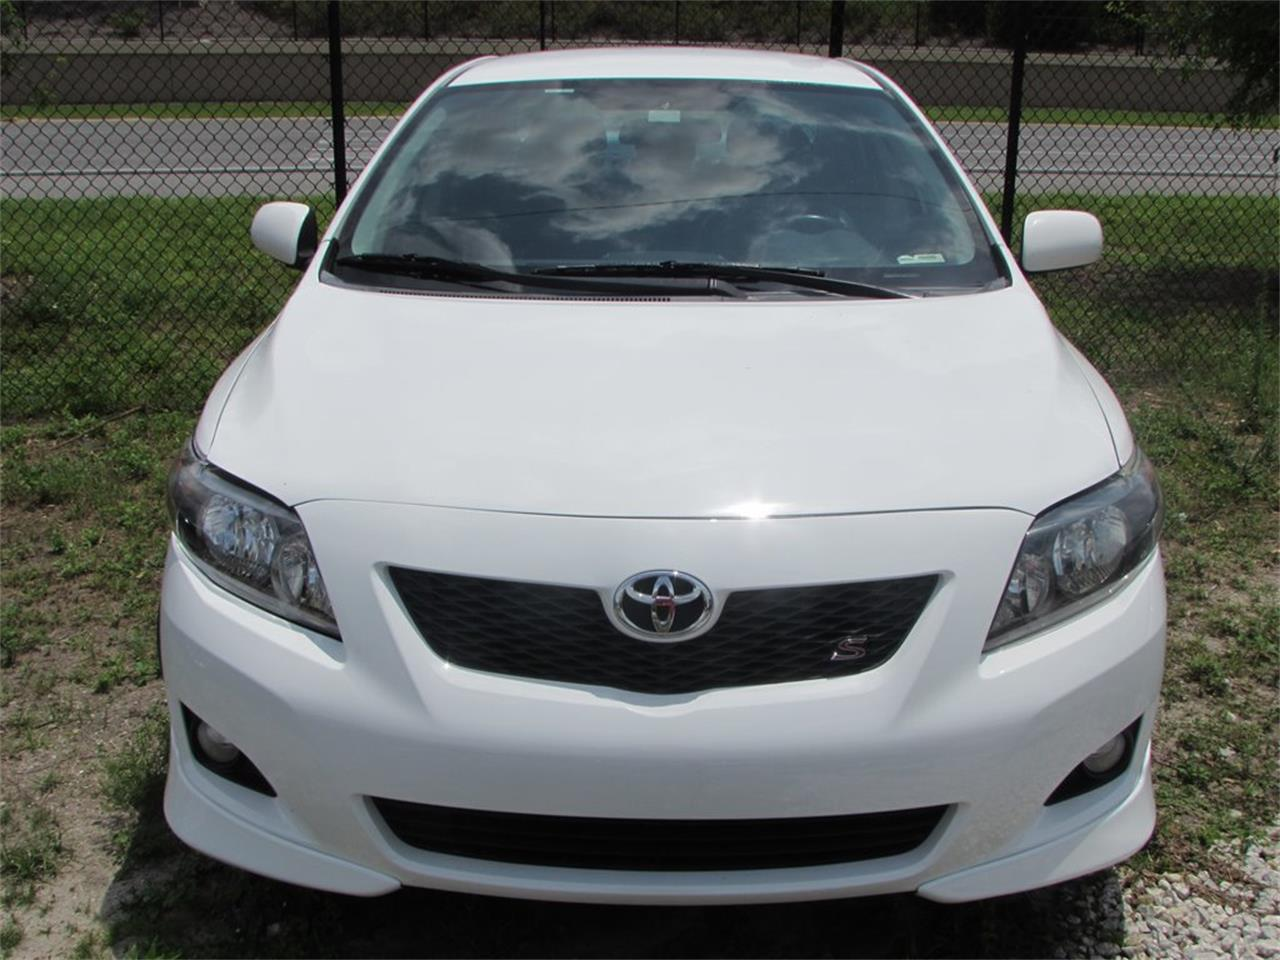 Large Picture of '09 Corolla - $7,700.00 Offered by Auto Express - Q282